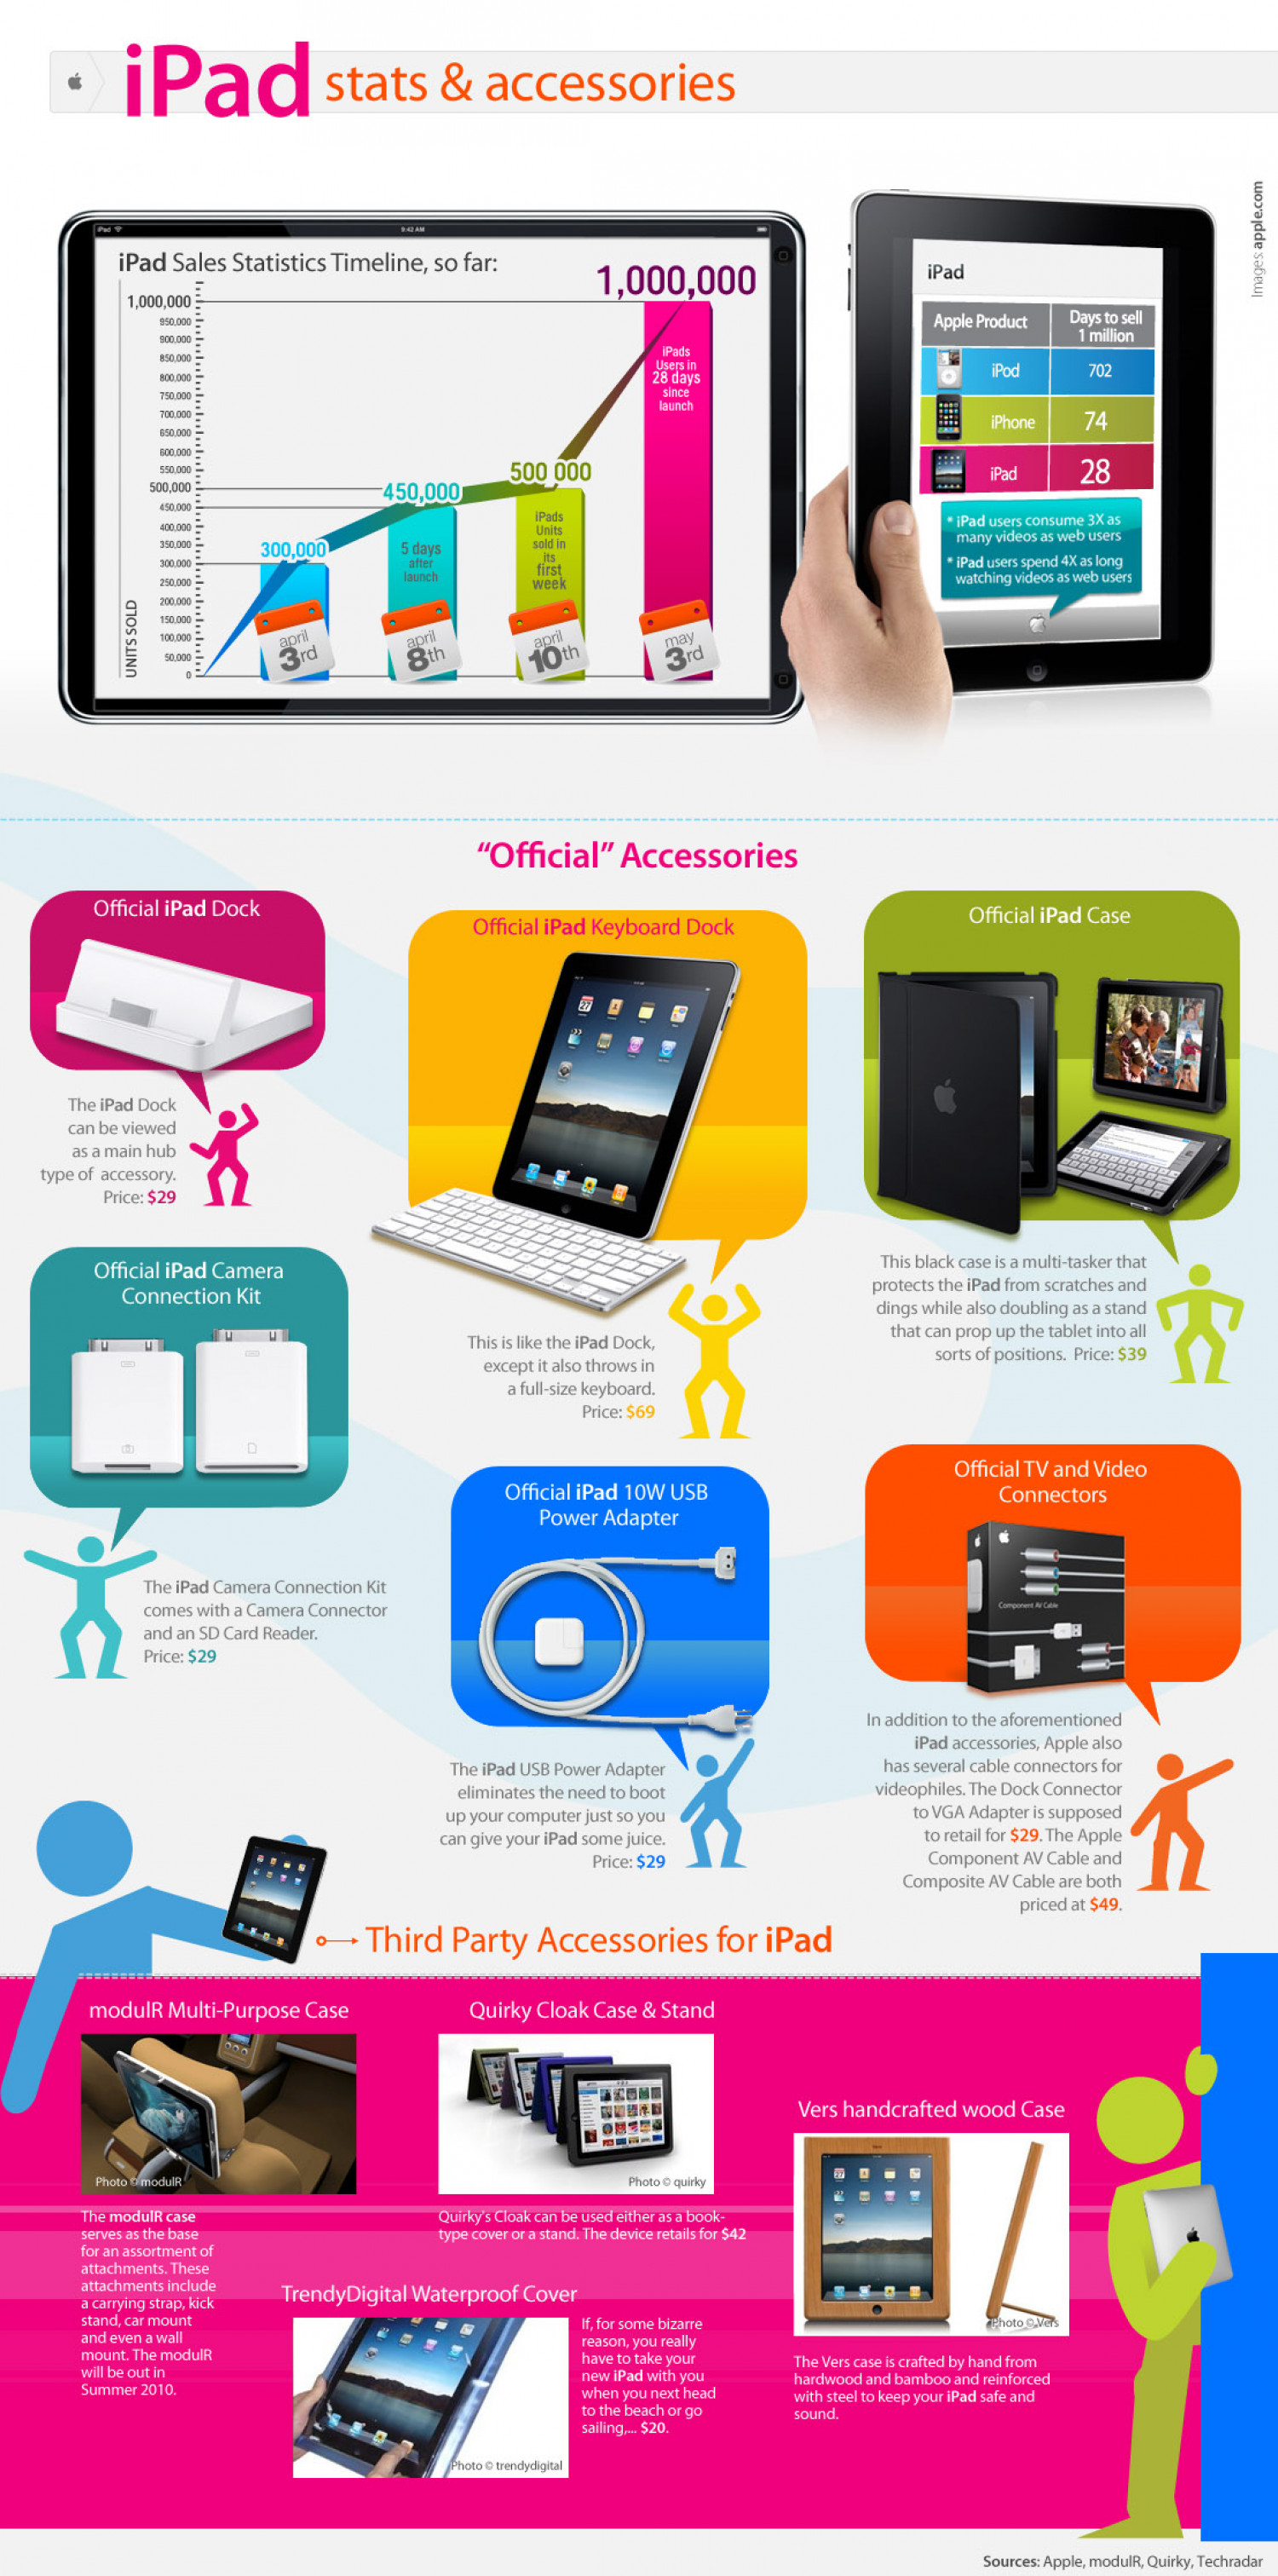 iPad Stats and Accessories Infographic